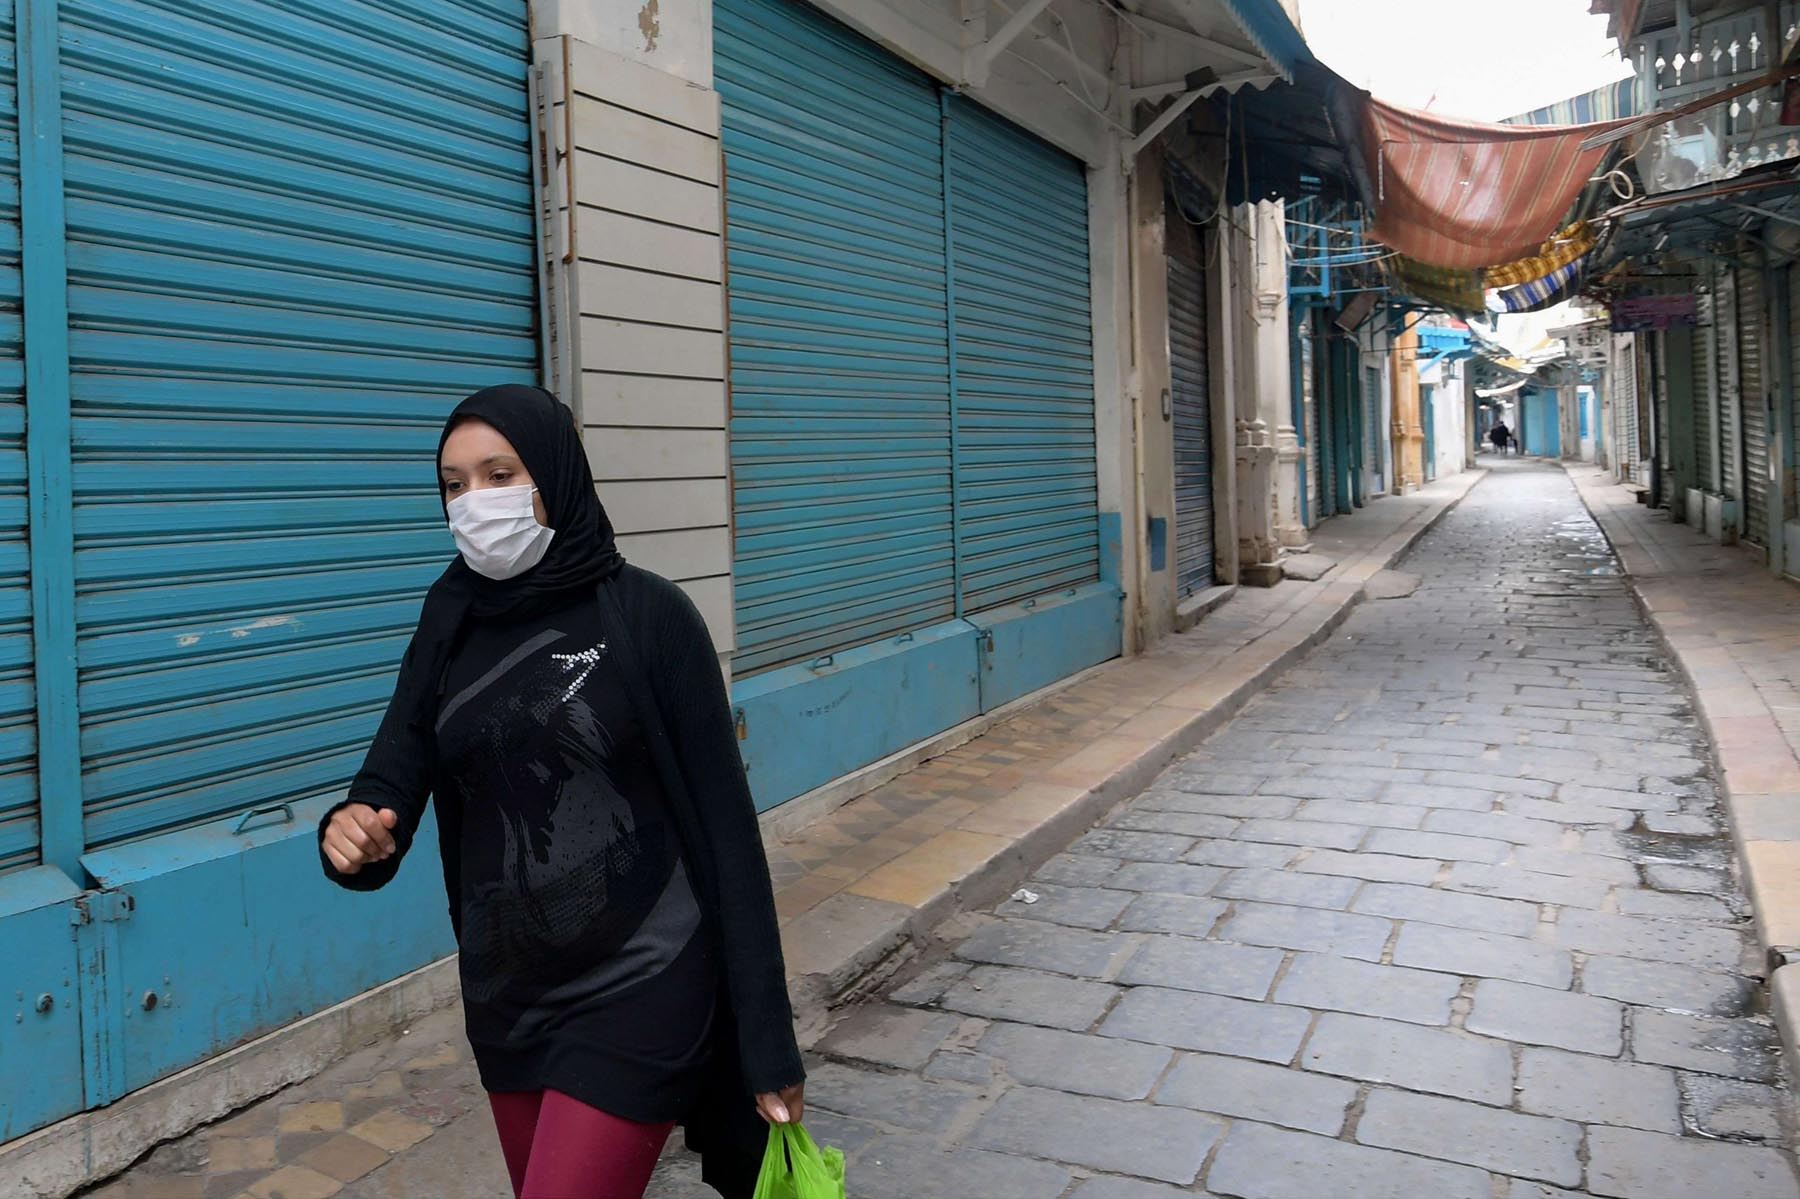 A Tunisian woman wearing a protective face mask walks through an alley in the souk of the Medina, on the first day of a general confinement imposed by the authorities in order to stem the spread of the novel cononavirus. (AFP)